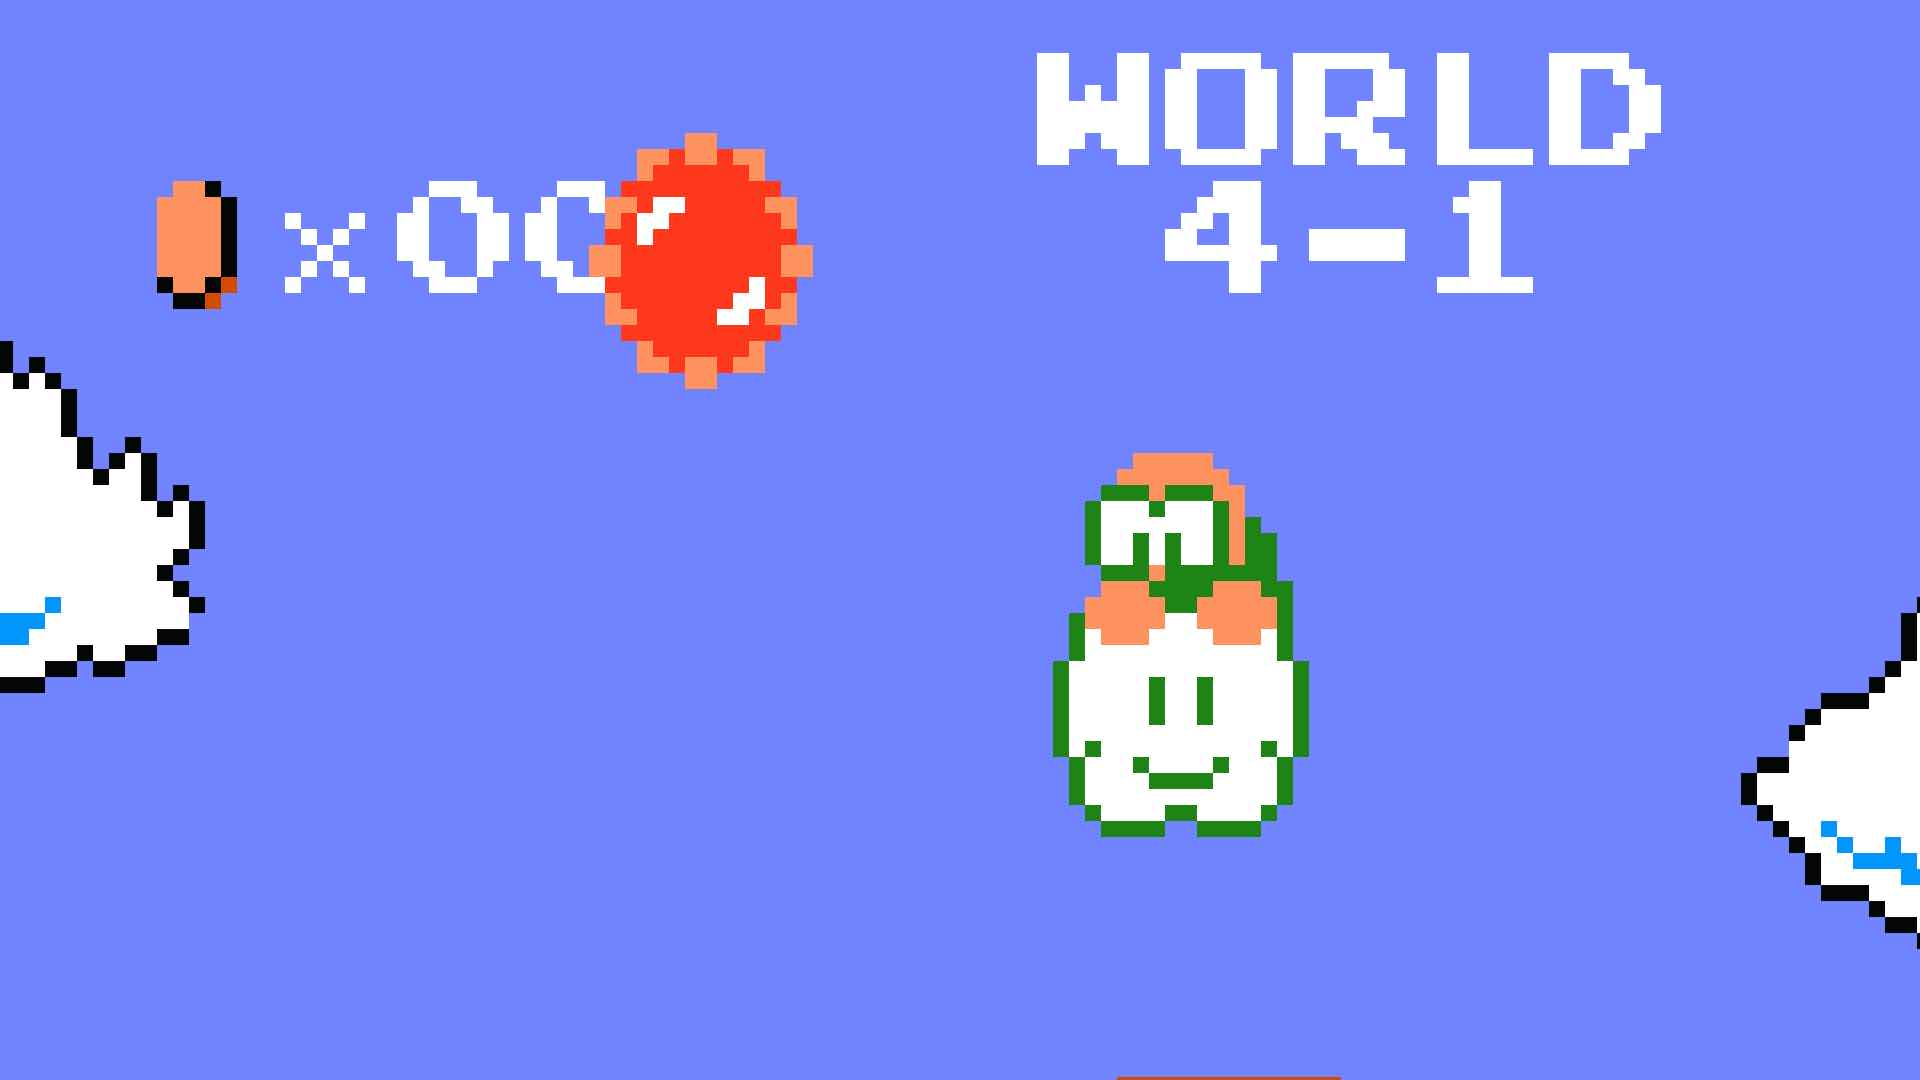 Bug in Super Mario Bros (NES) discovered, patched